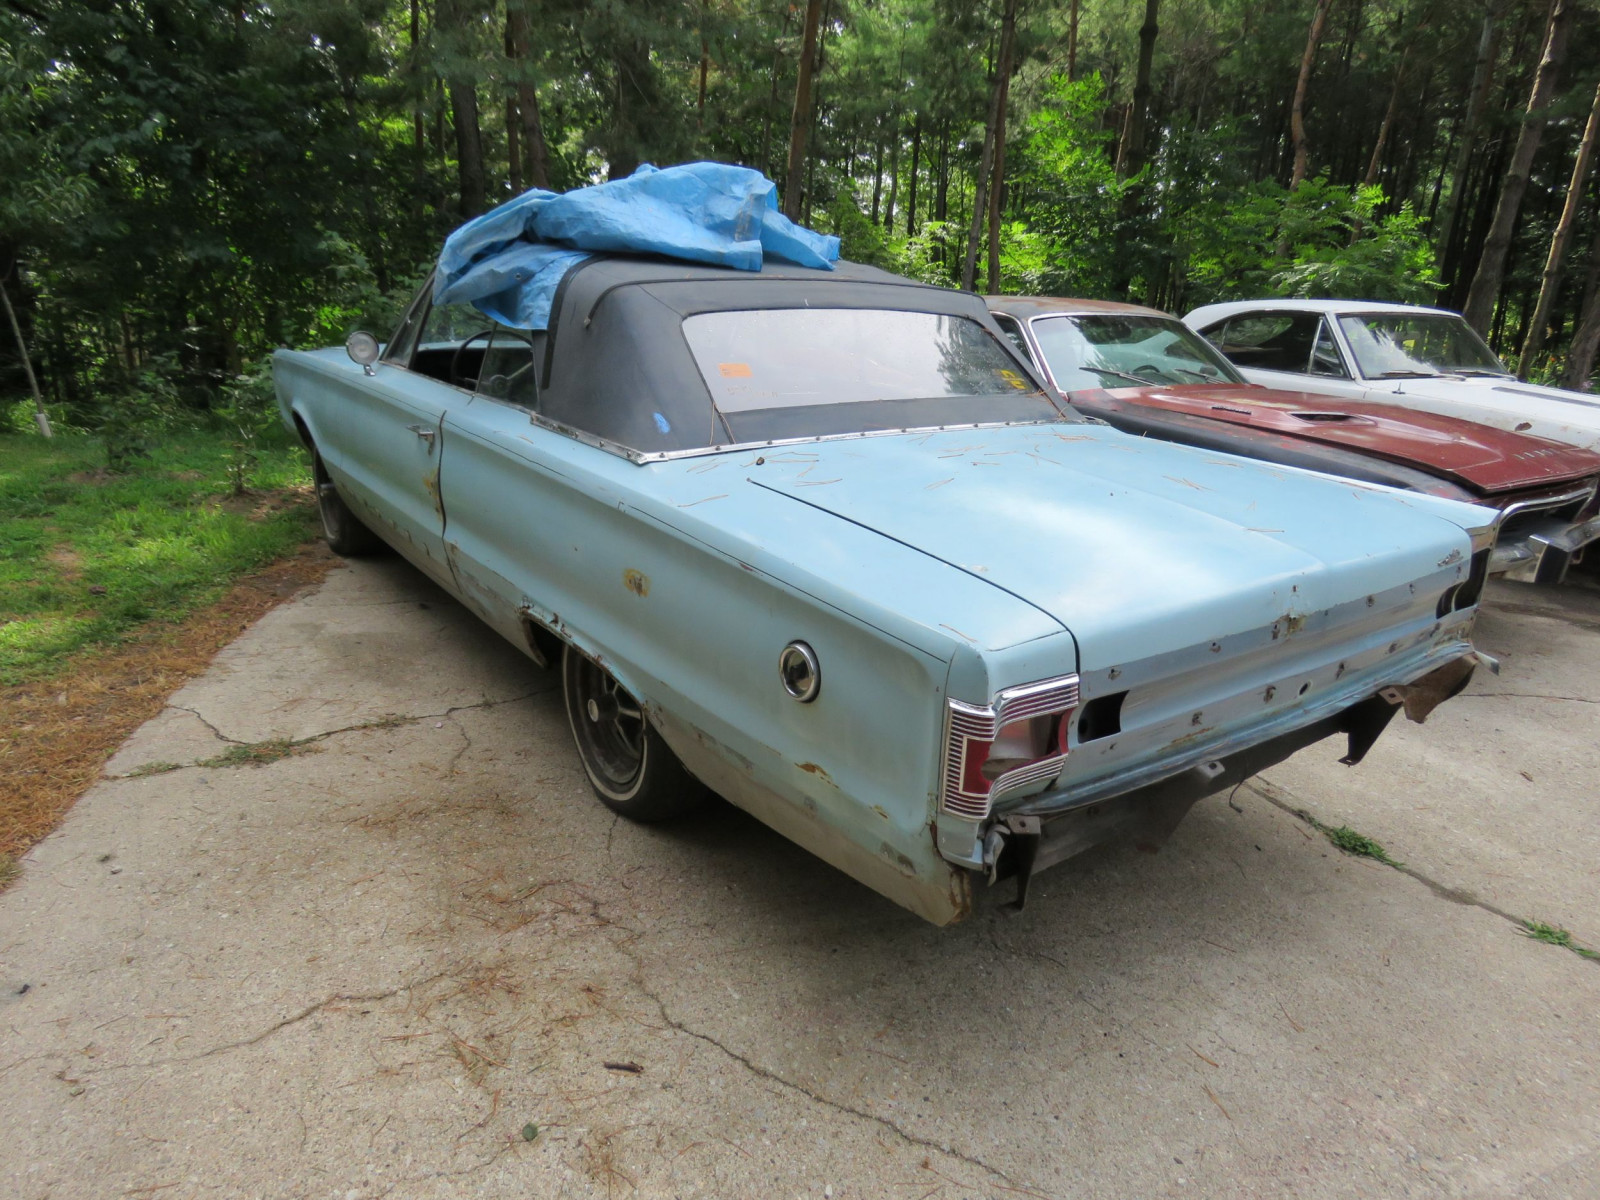 1967 Plymouth Satellite Convertible - Image 7